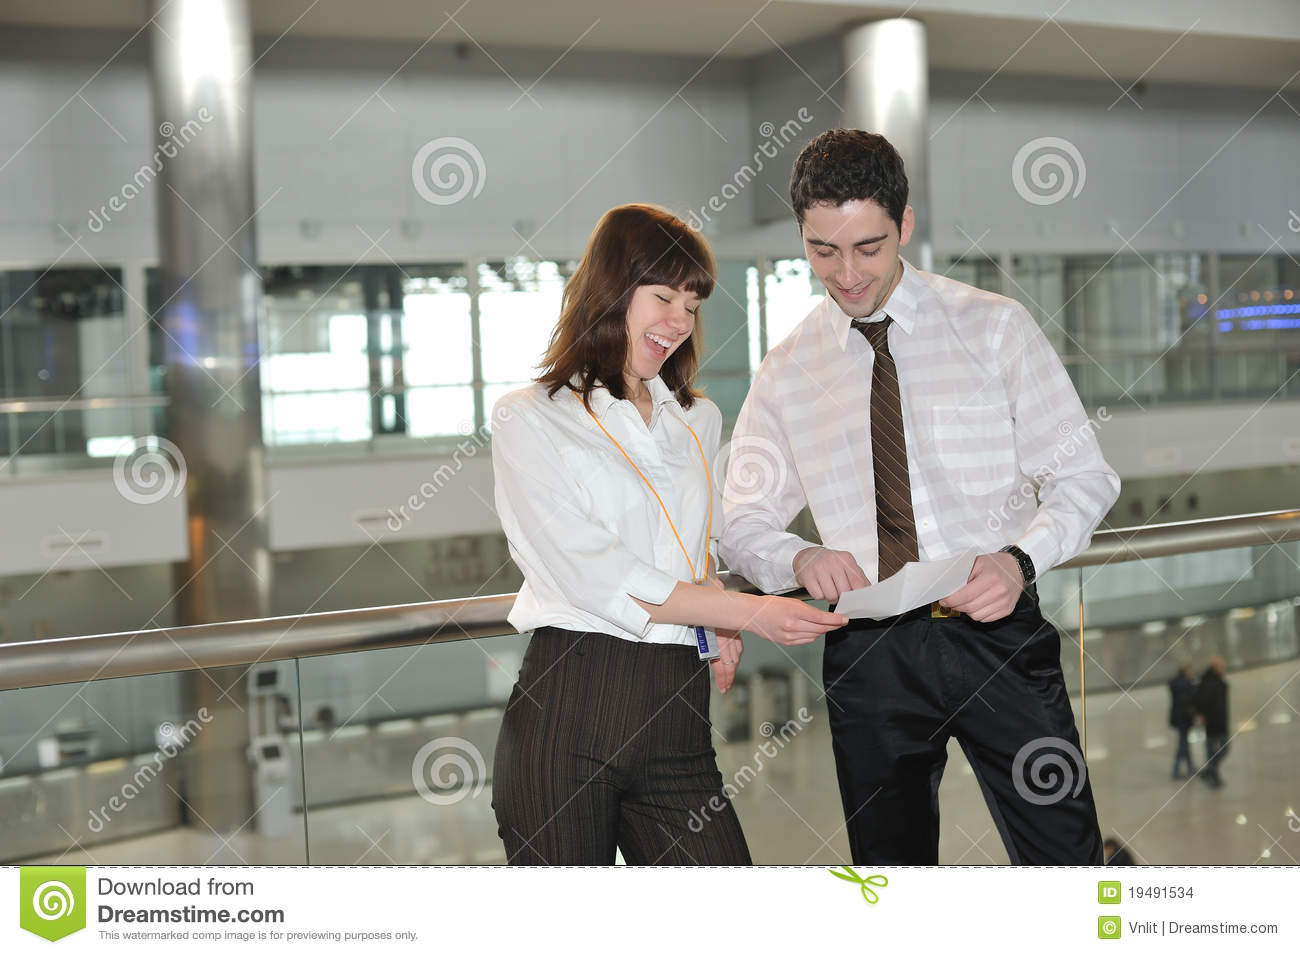 Business people in office environment